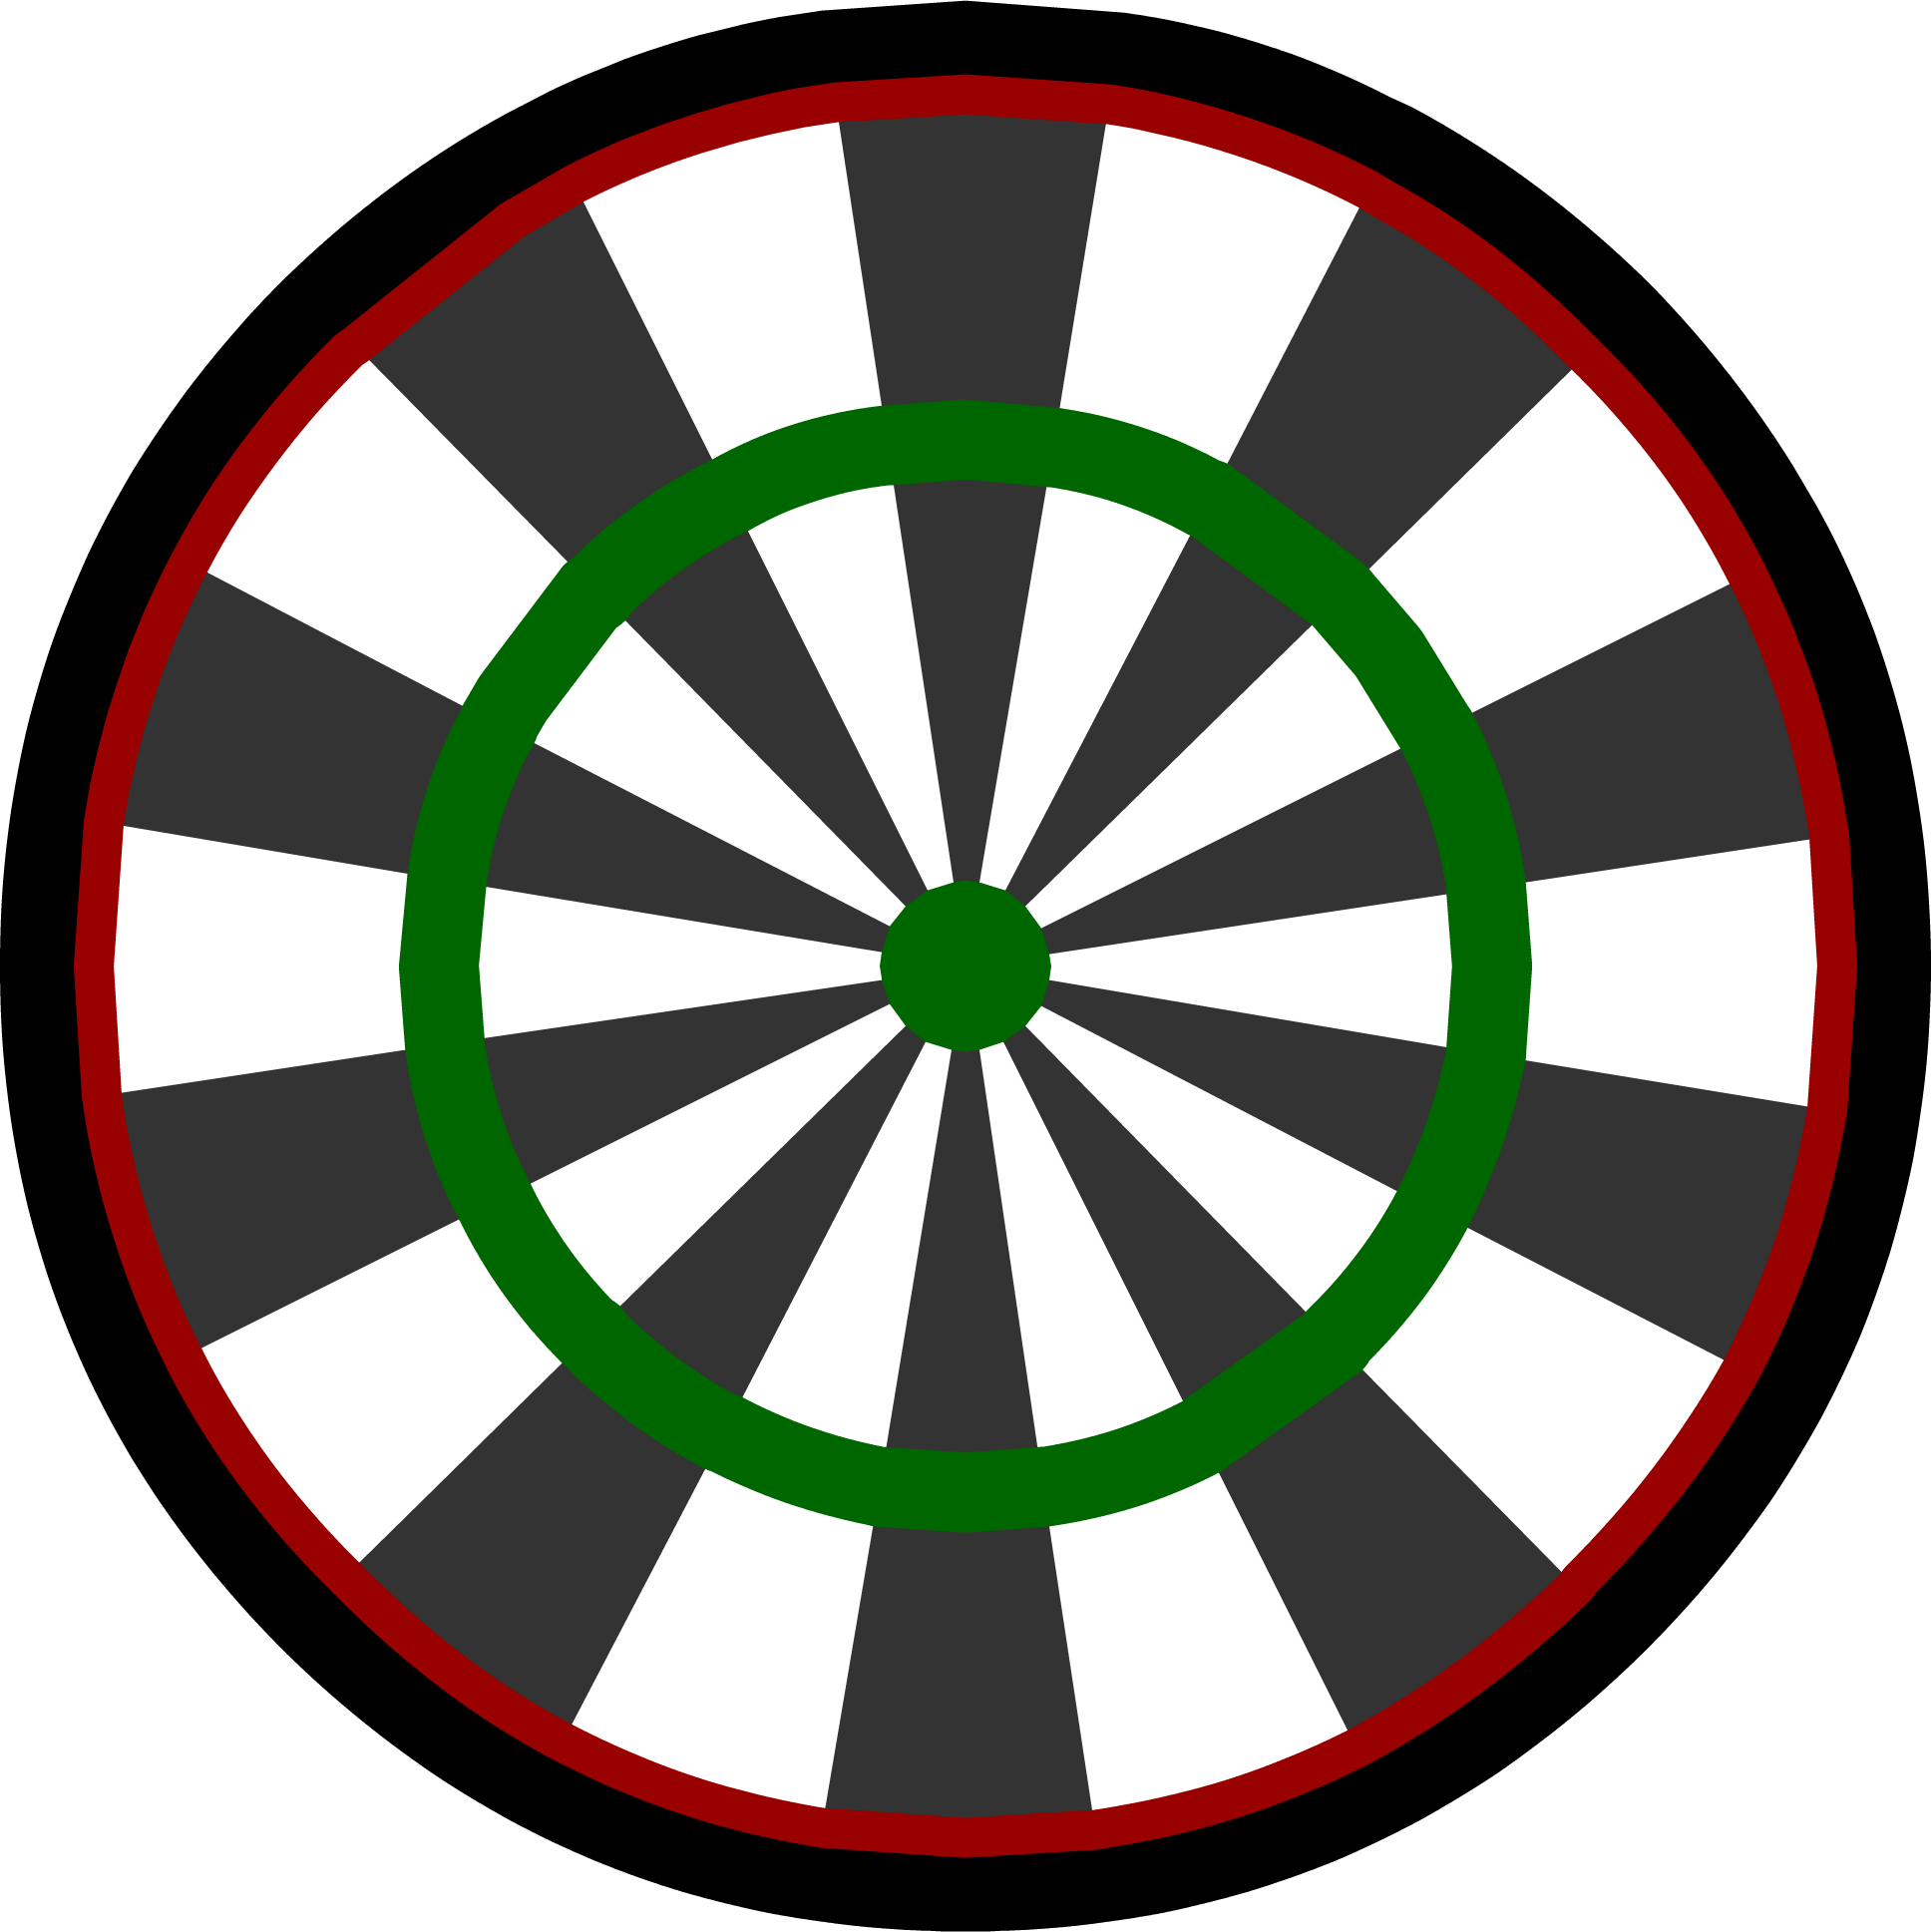 dart board club penguin wiki fandom powered by wikia free penguin clipart Free Penguin Clip Art to Color